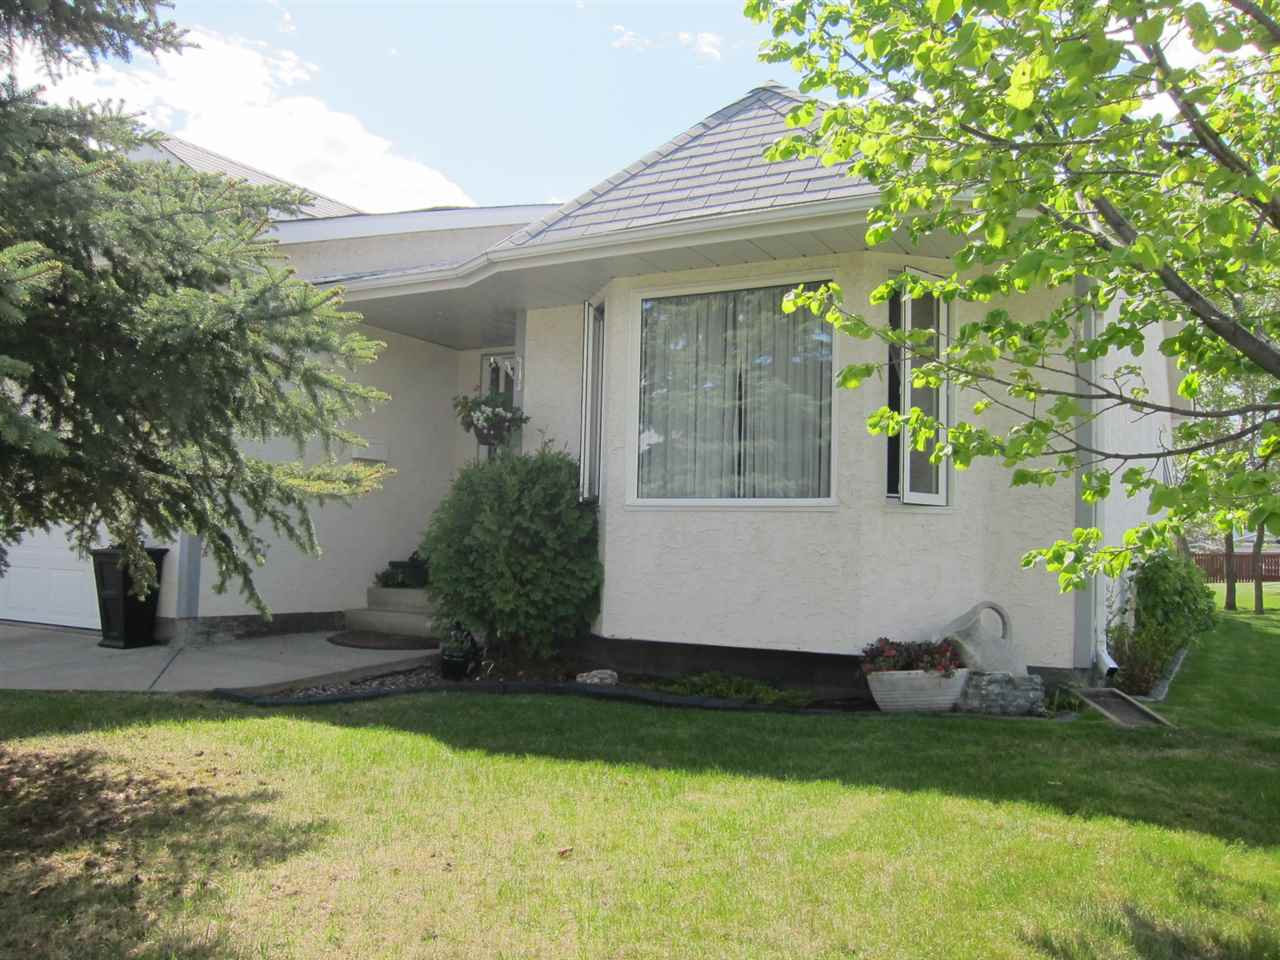 Main Photo: 5971 189 Street in Edmonton: Zone 20 House Half Duplex for sale : MLS® # E4066260